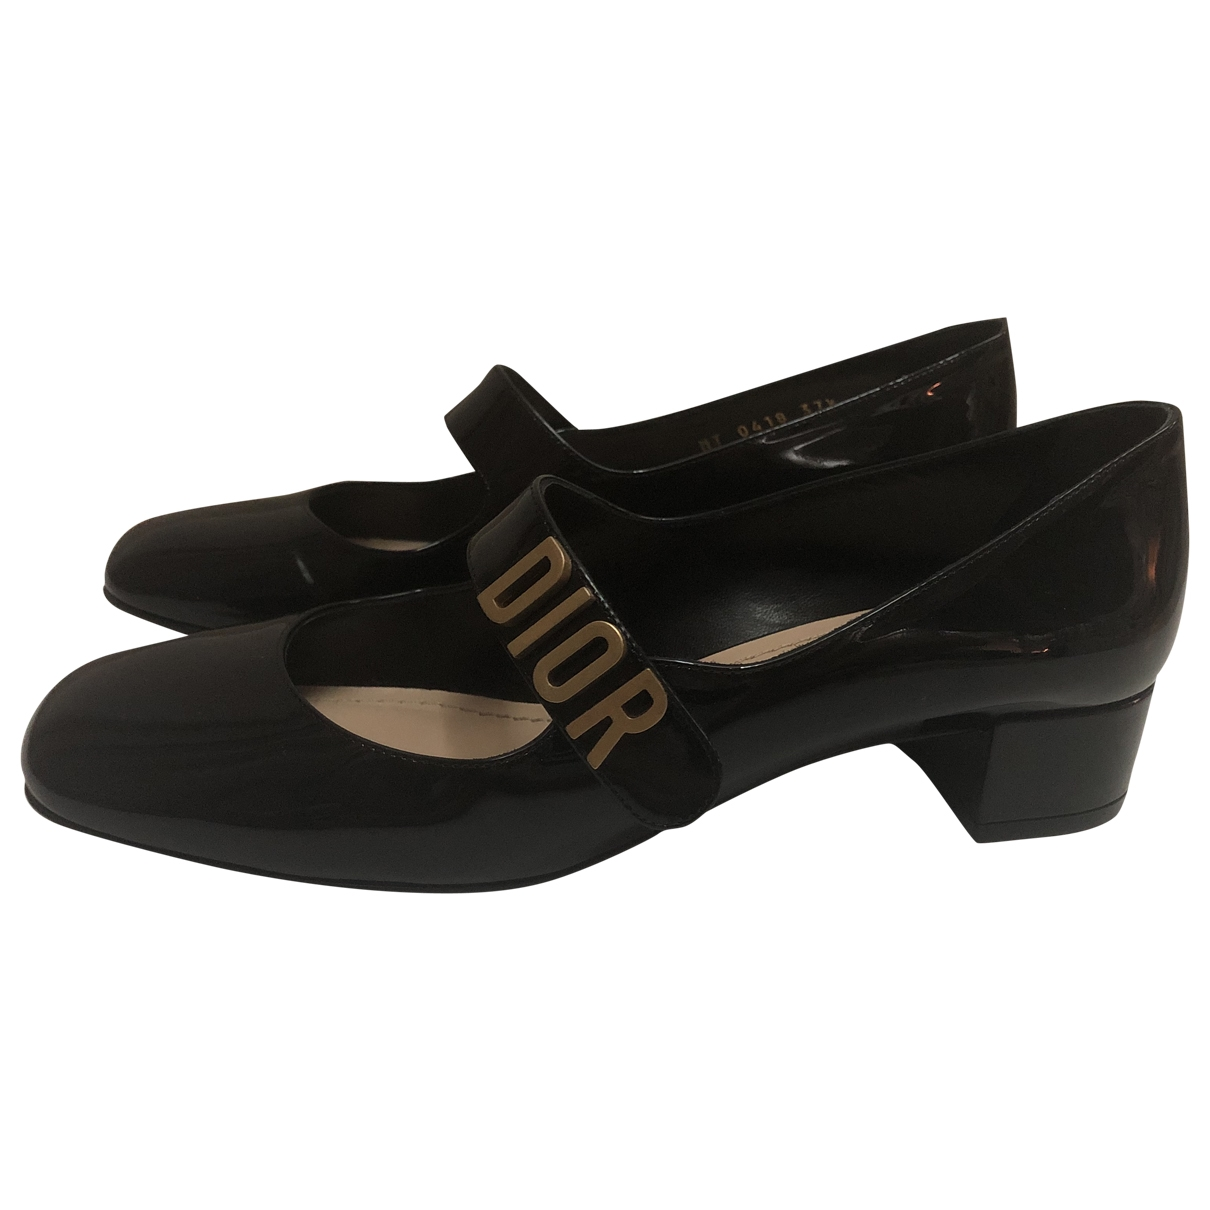 Dior Baby-D Black Patent leather Ballet flats for Women 37.5 EU